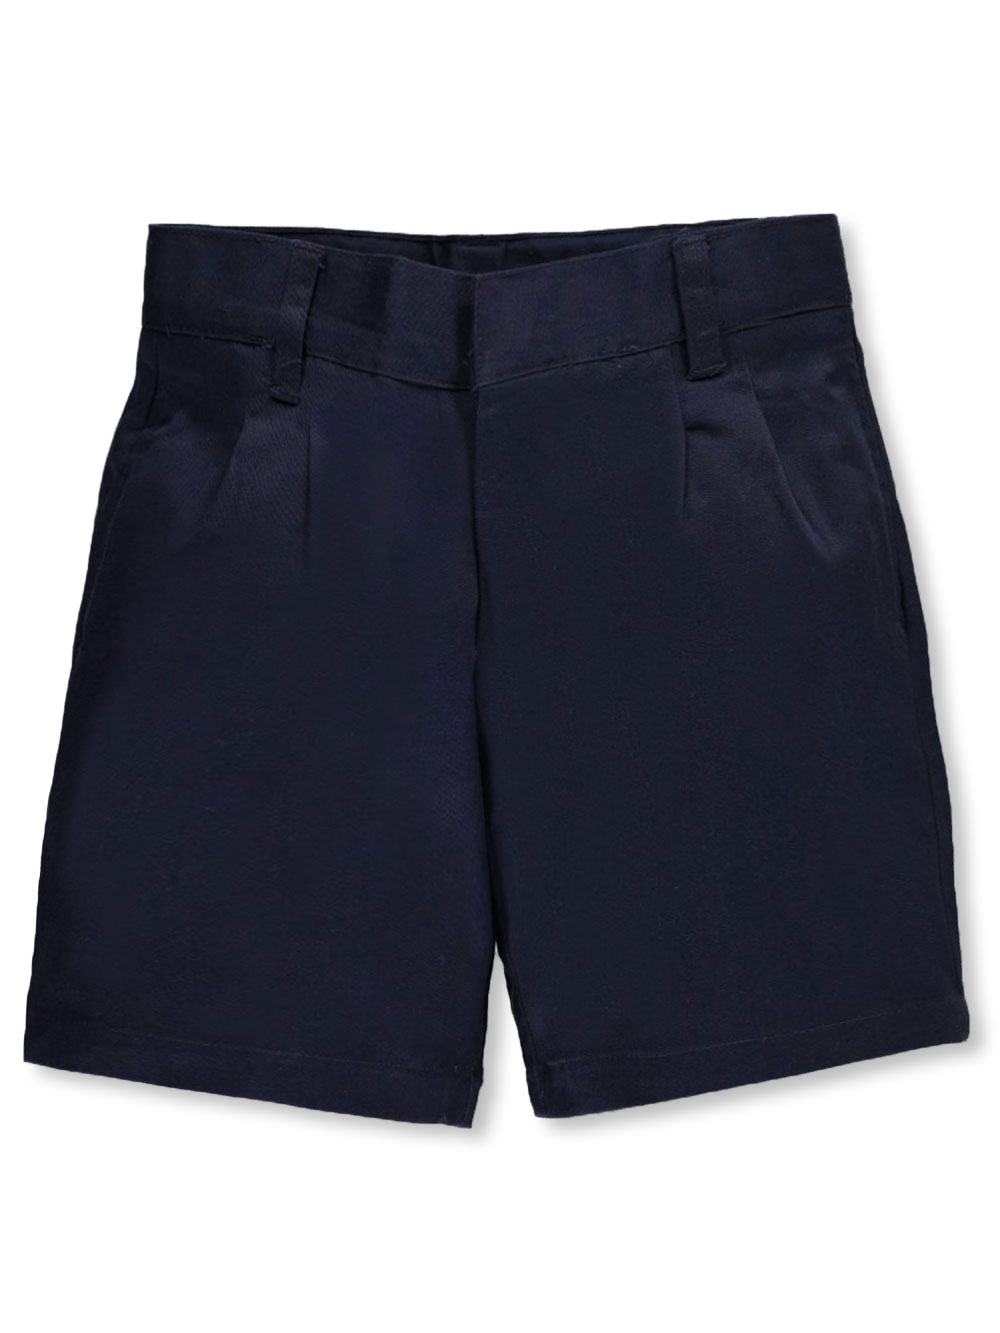 Image of French Toast Pleated Front Unisex Twill Short with Adjustable Waist Sizes 8  20  navy 14